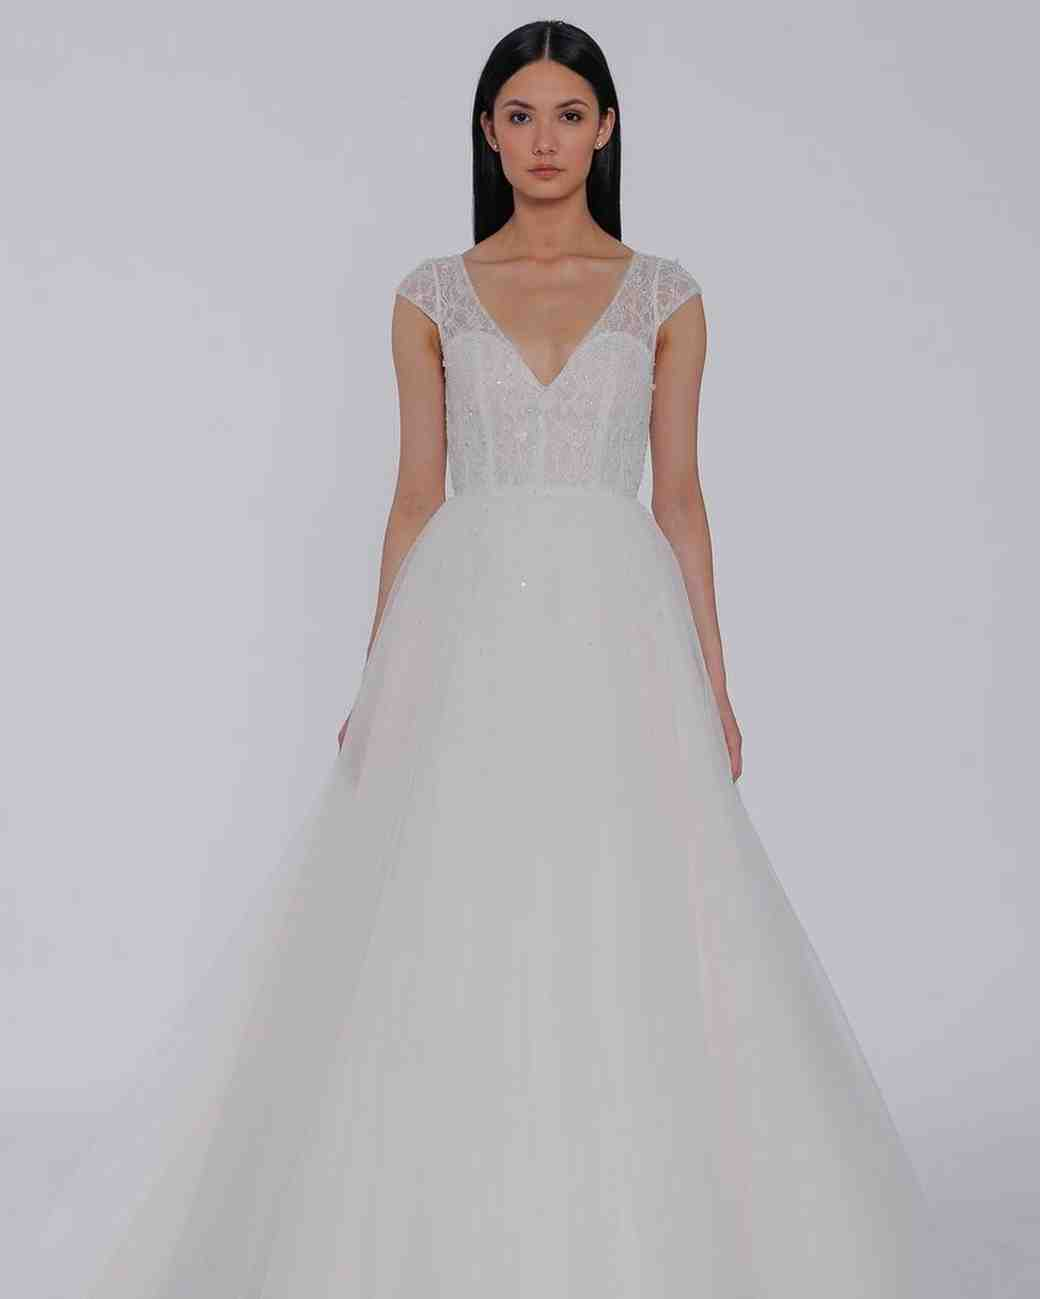 Allison Webb Spring 2019 Wedding Dress Collection